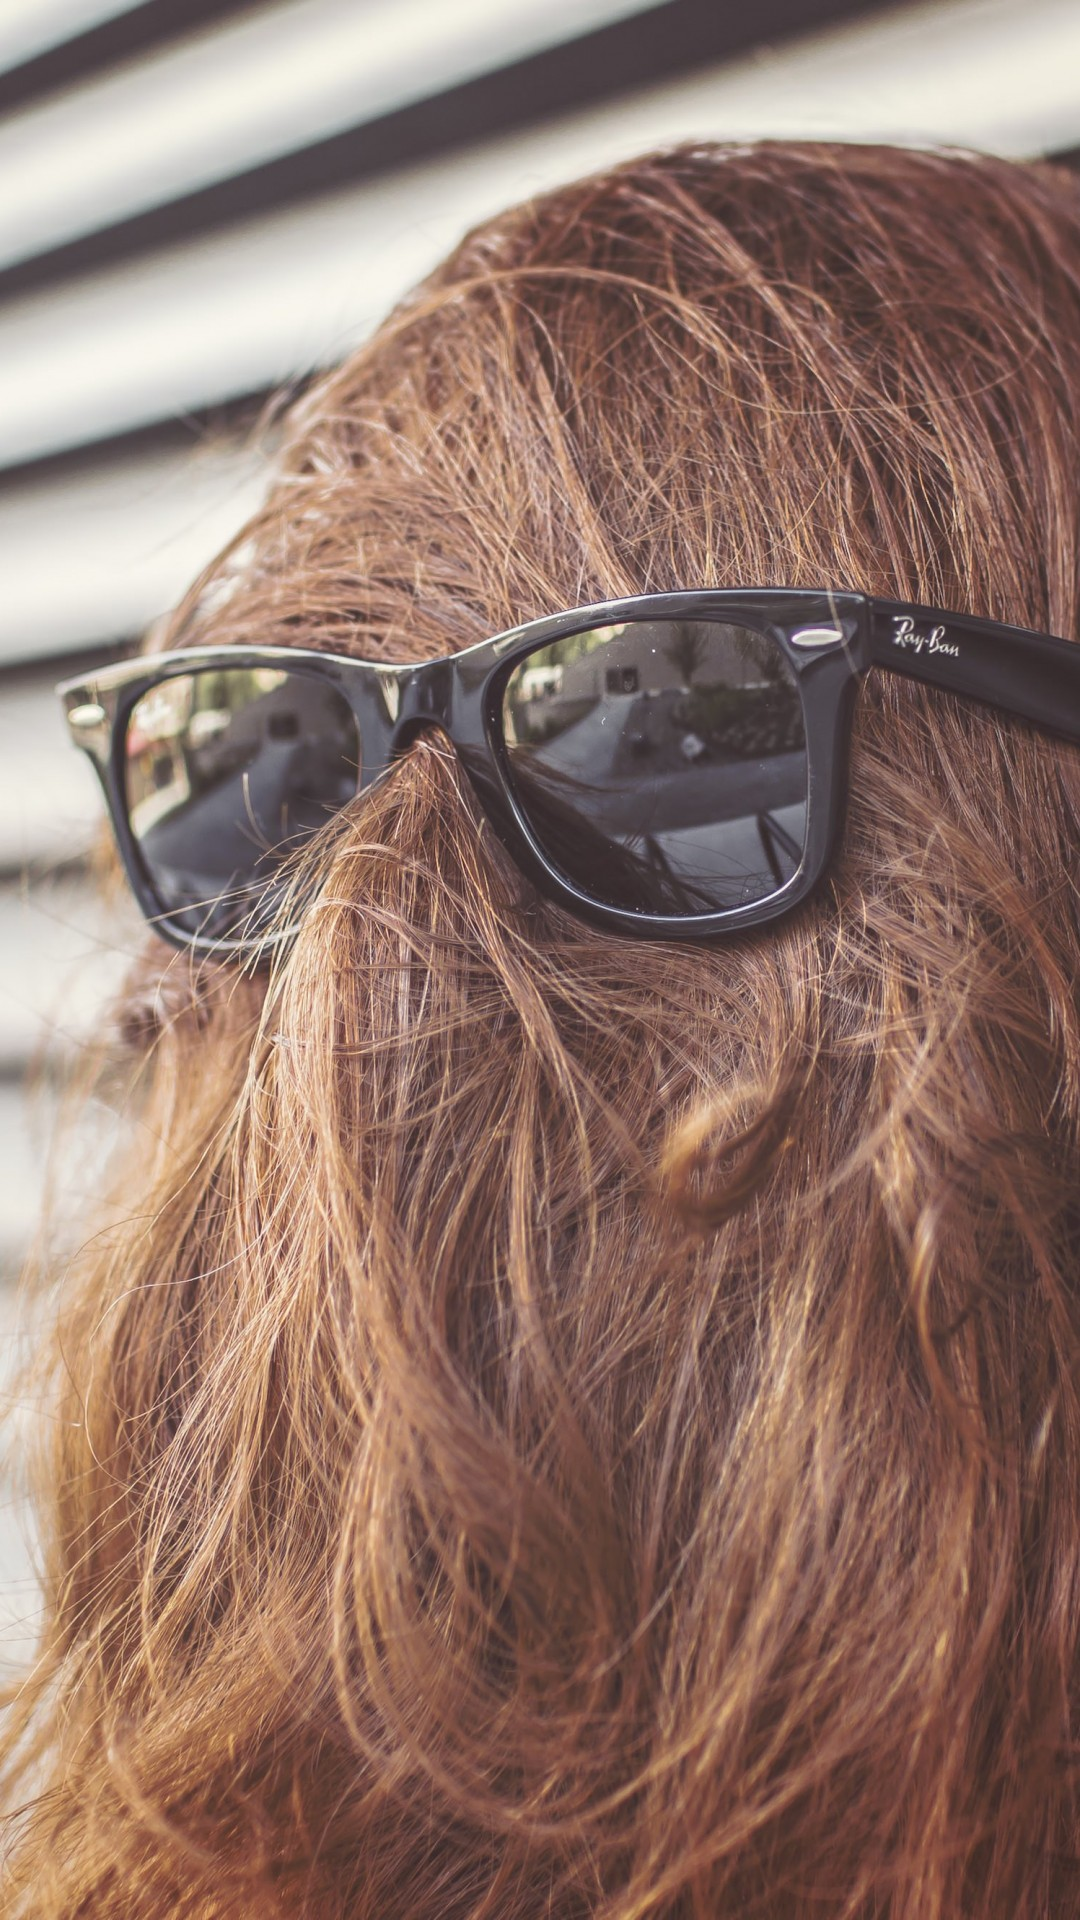 Chewbacca Girl Wallpaper for SONY Xperia Z2